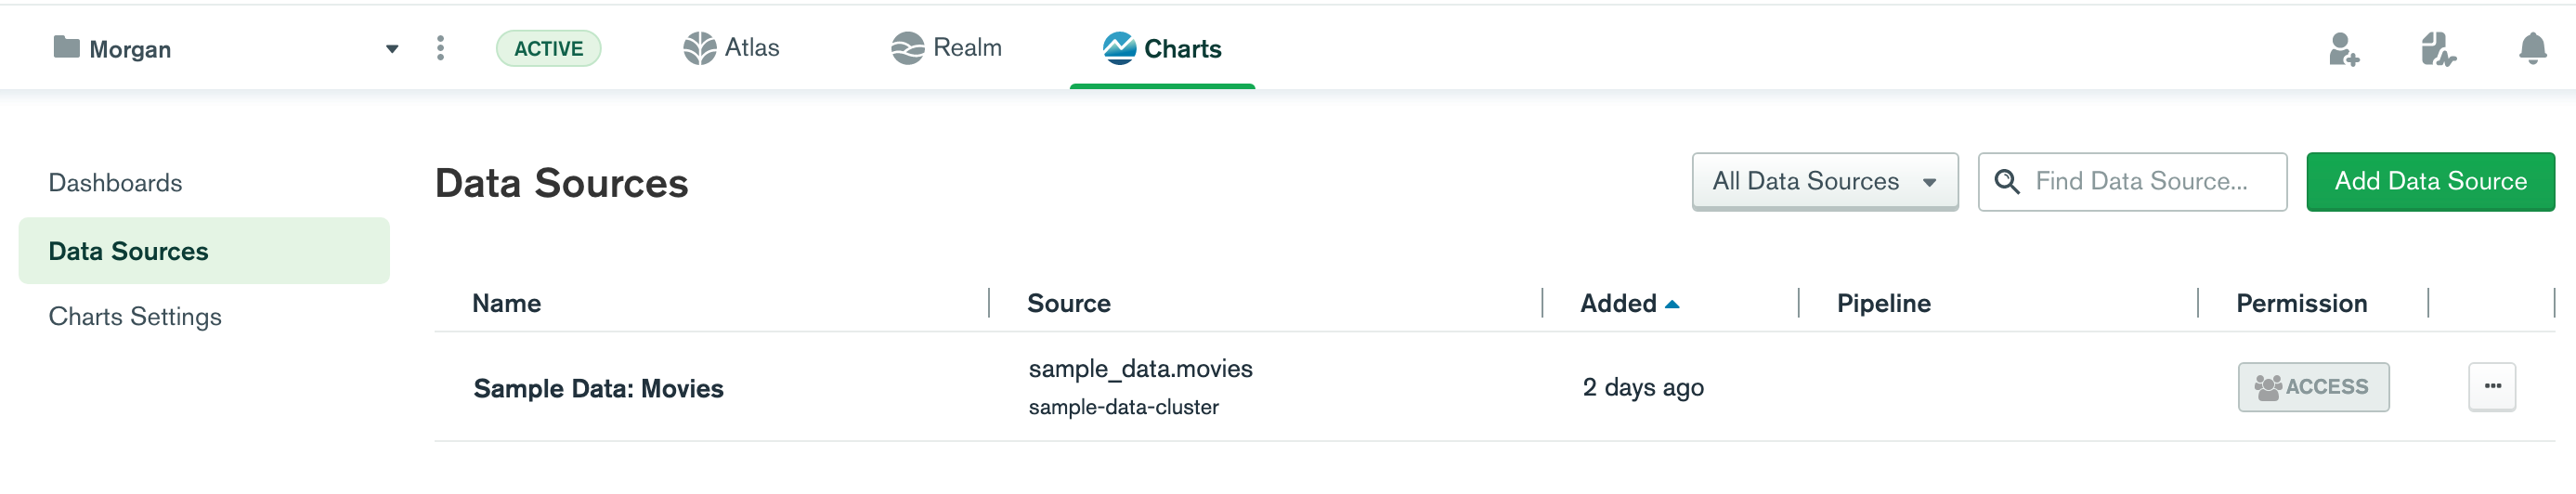 Charts screen capture of adding a new data source